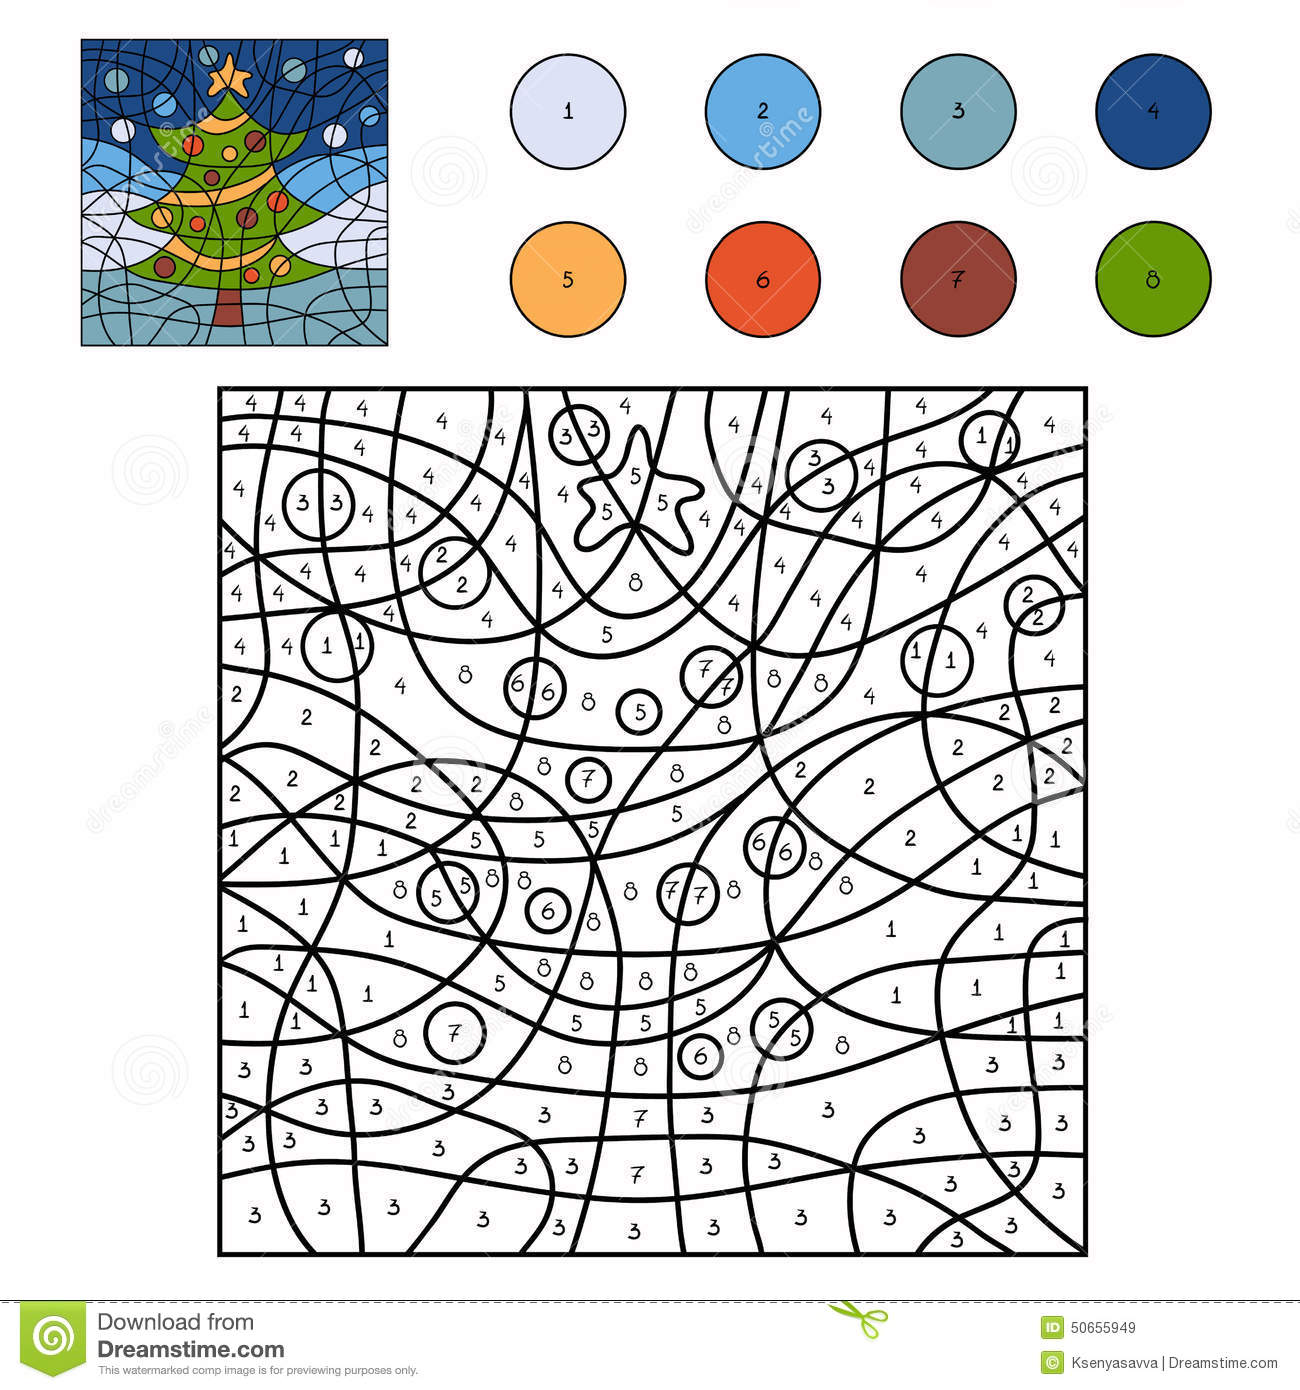 color by number christmas tree stock vector image 50655949